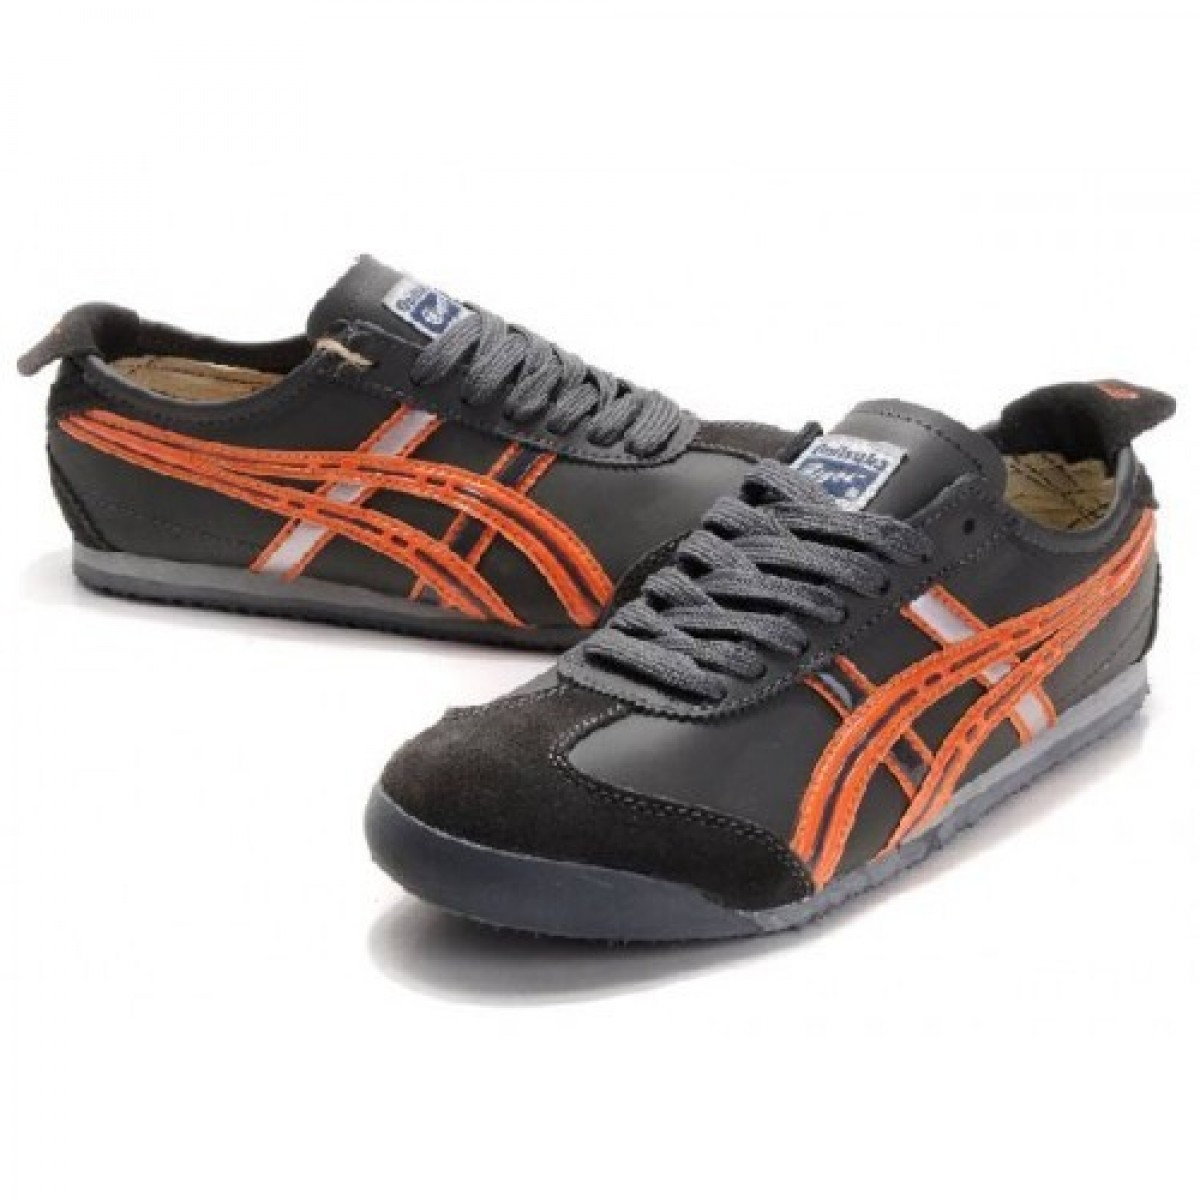 DP0875 Soldes Asics Onitsuka Tiger Mexico 66 chaussures gris orange 91886832 Pas Cher